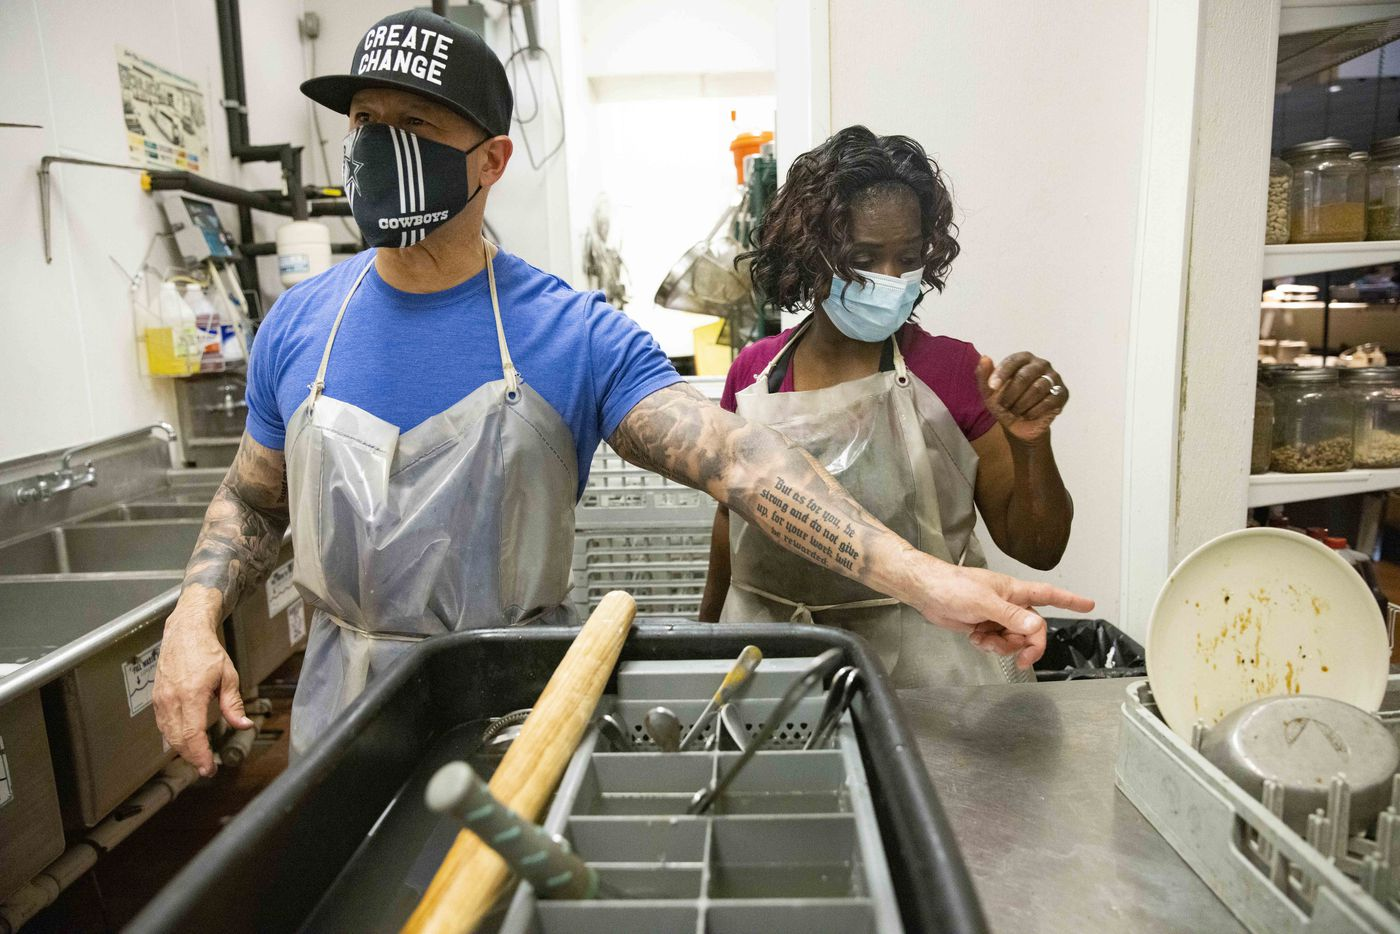 Dallas Police Chief Eddie García (left) along with officer Pearl Mcdowell (right) ask Payton Ceasar, 17, if they can wash the tray of dirty dishes during their shift as volunteer dishwashers at Café Momentum, which employs formerly youth coming out of juvenile detention, on Friday, May 14, 2021, in Dallas. (Juan Figueroa/The Dallas Morning News)